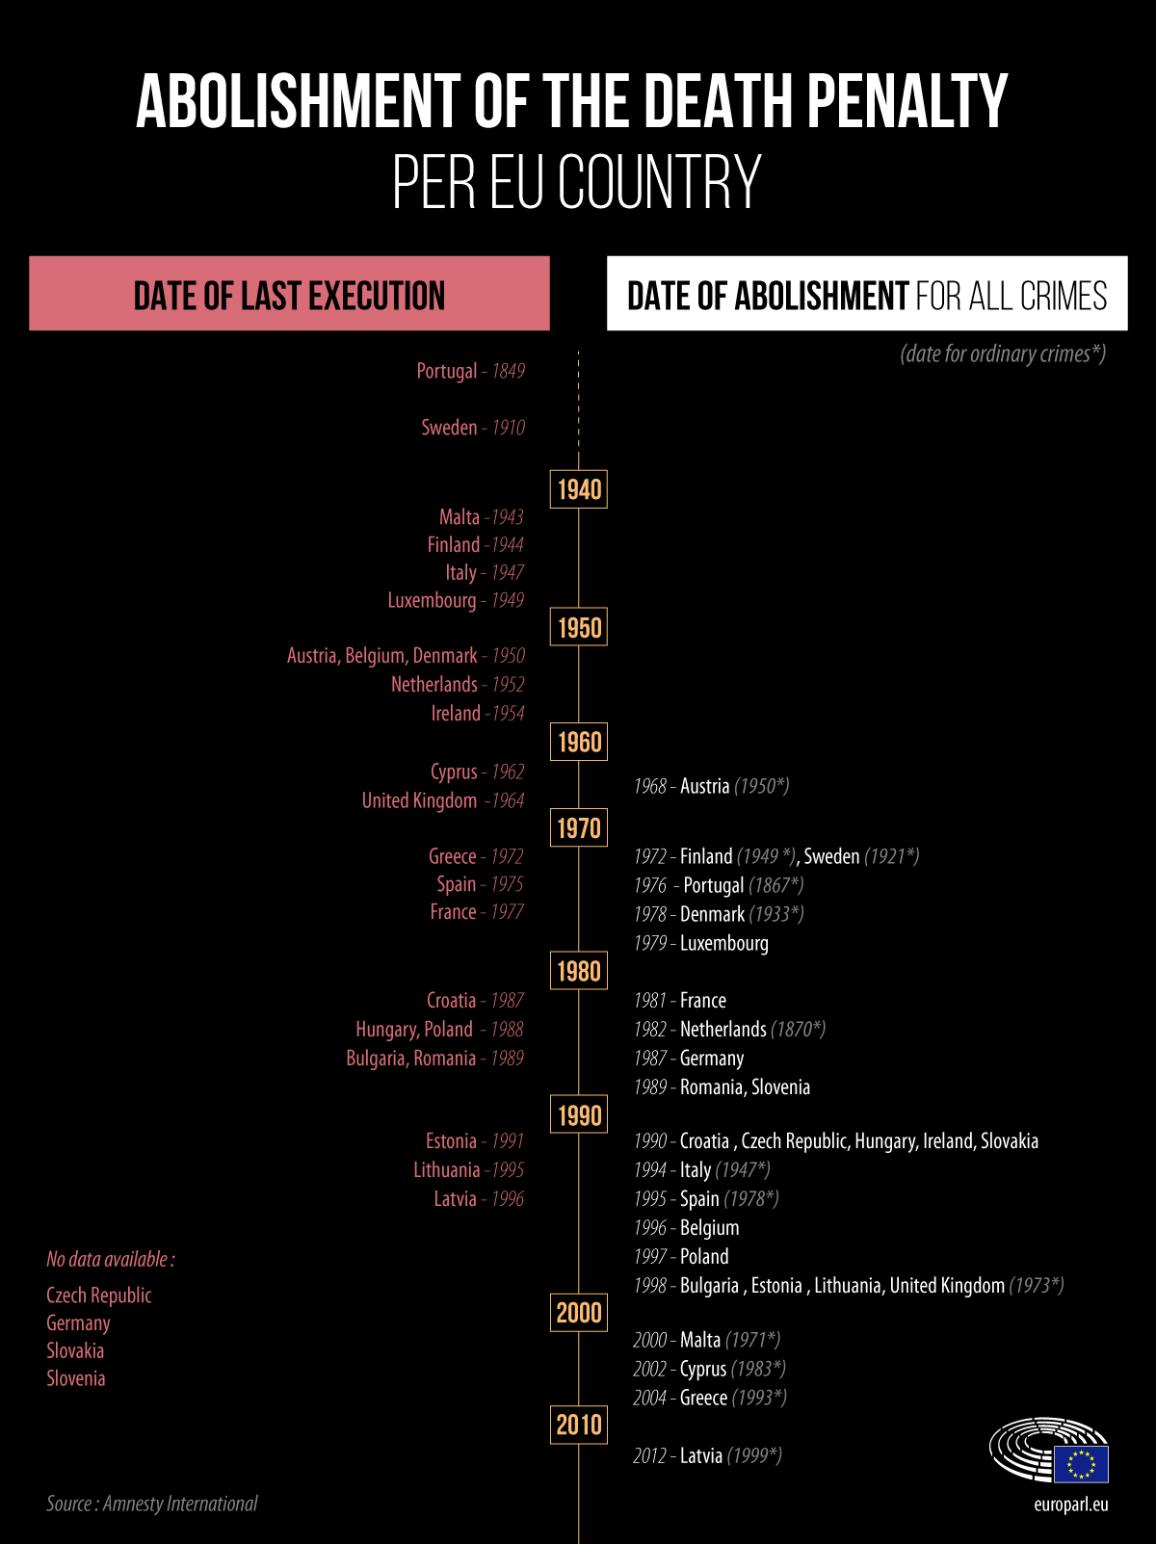 Timeline of the abolishment of the death penalty in EU countries